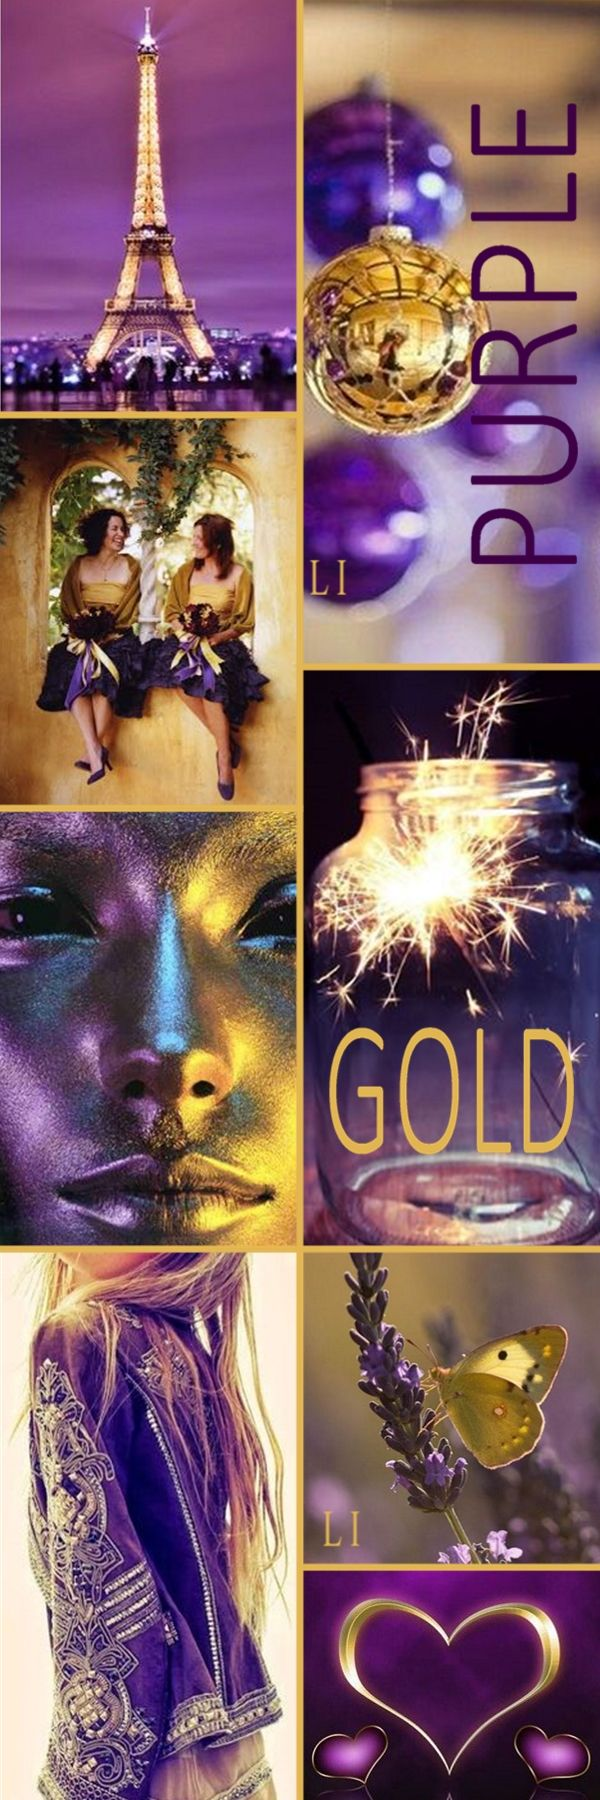 Good evening Ladies, Tonight ( Sept, 17) , Let's pin the combo colors of Purple and Gold. Happy Pinning dear ladies.❤❤